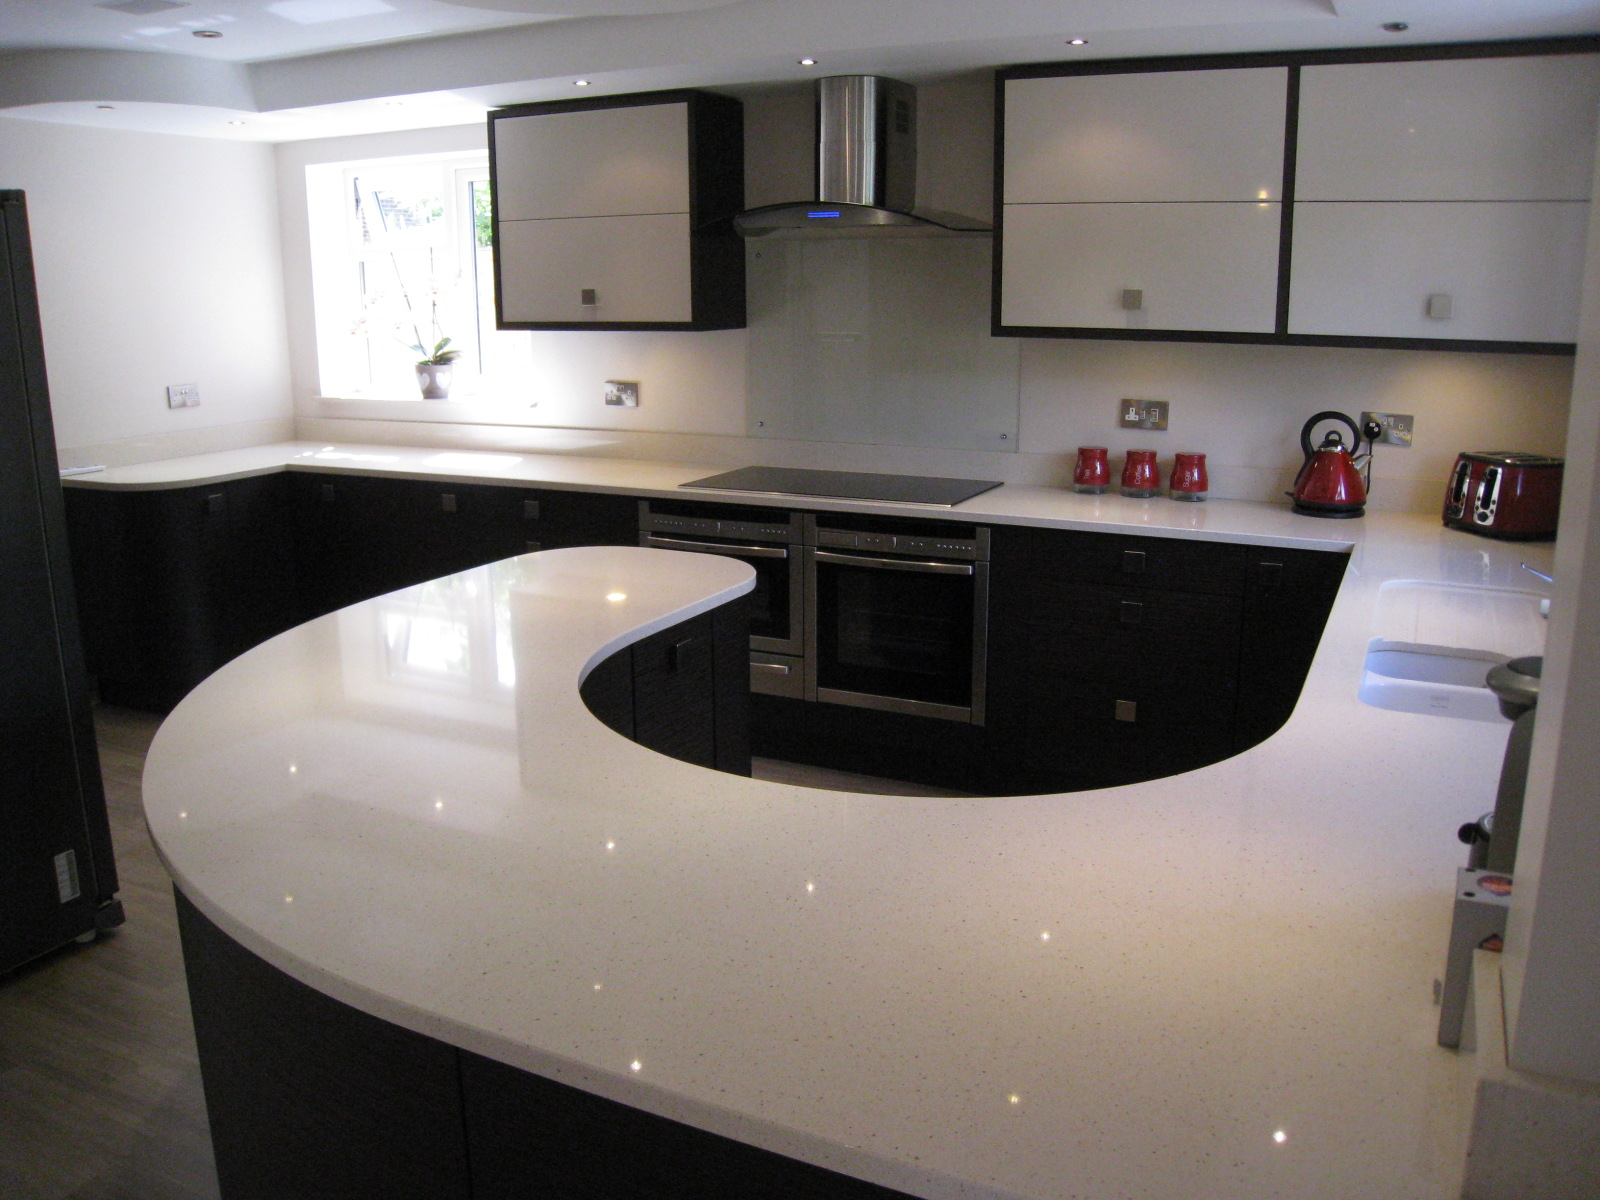 Black and white and red bathroom - Blanco Capri Silestone Quartz Supplied And Fitted For Caws Carpentry